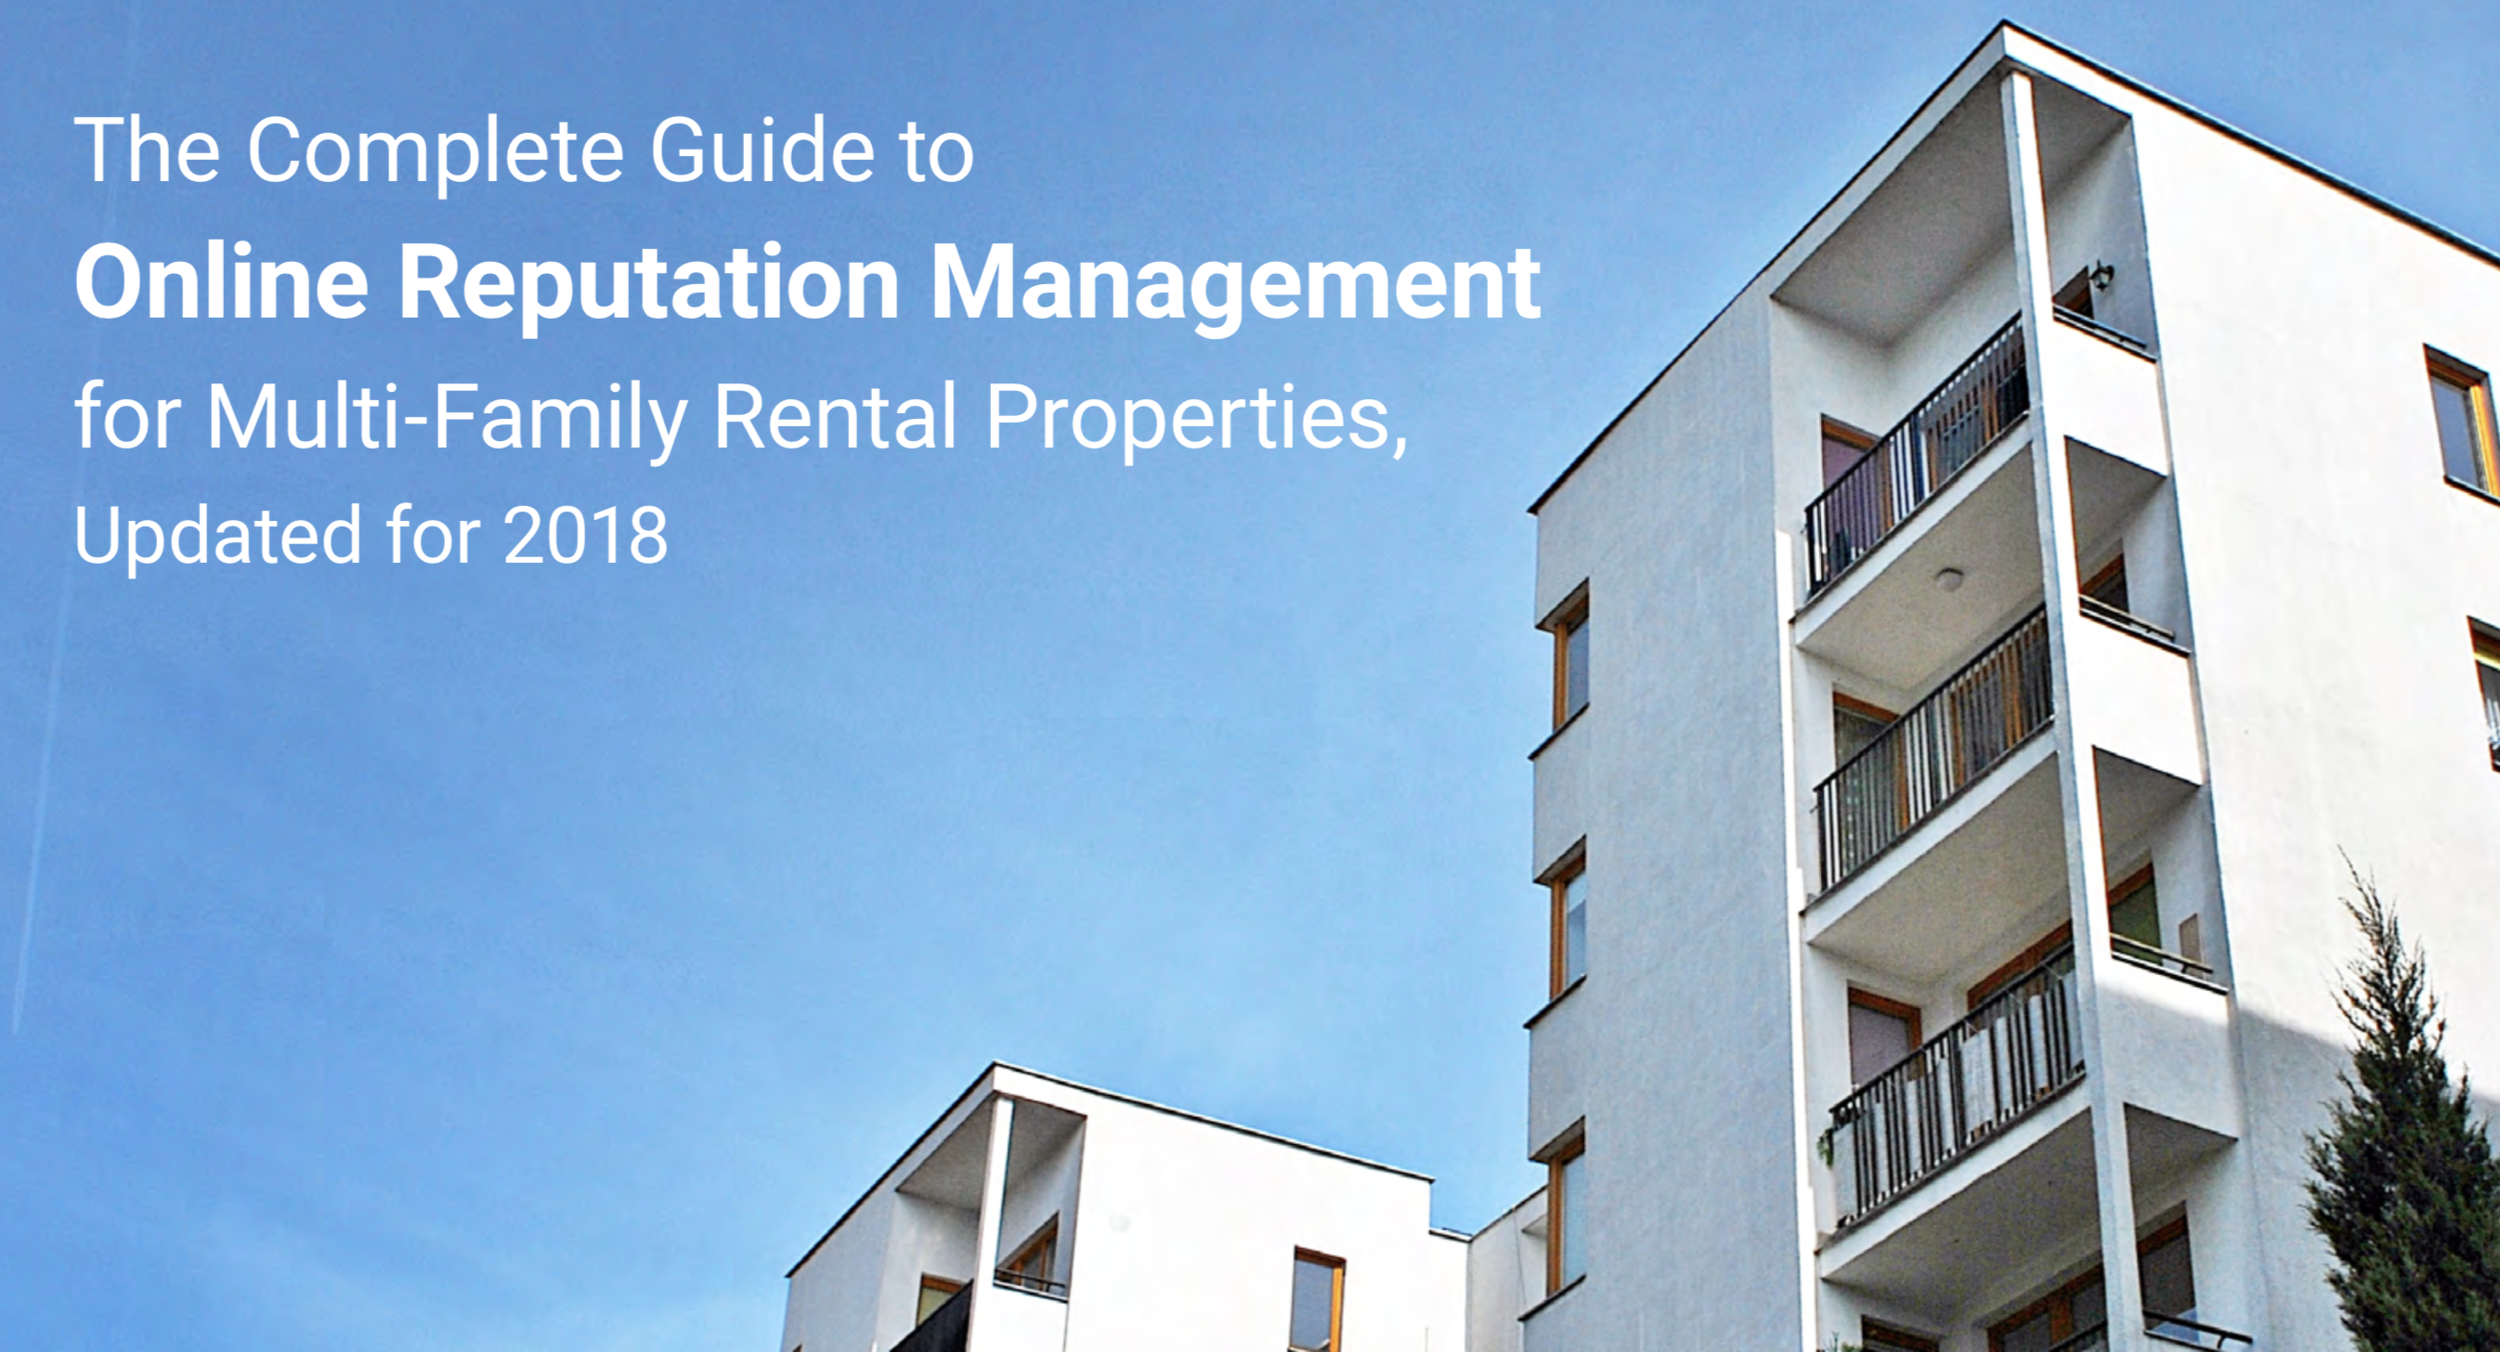 The Complete Guide for Online Reputation Management for Multifamily Rental Properties